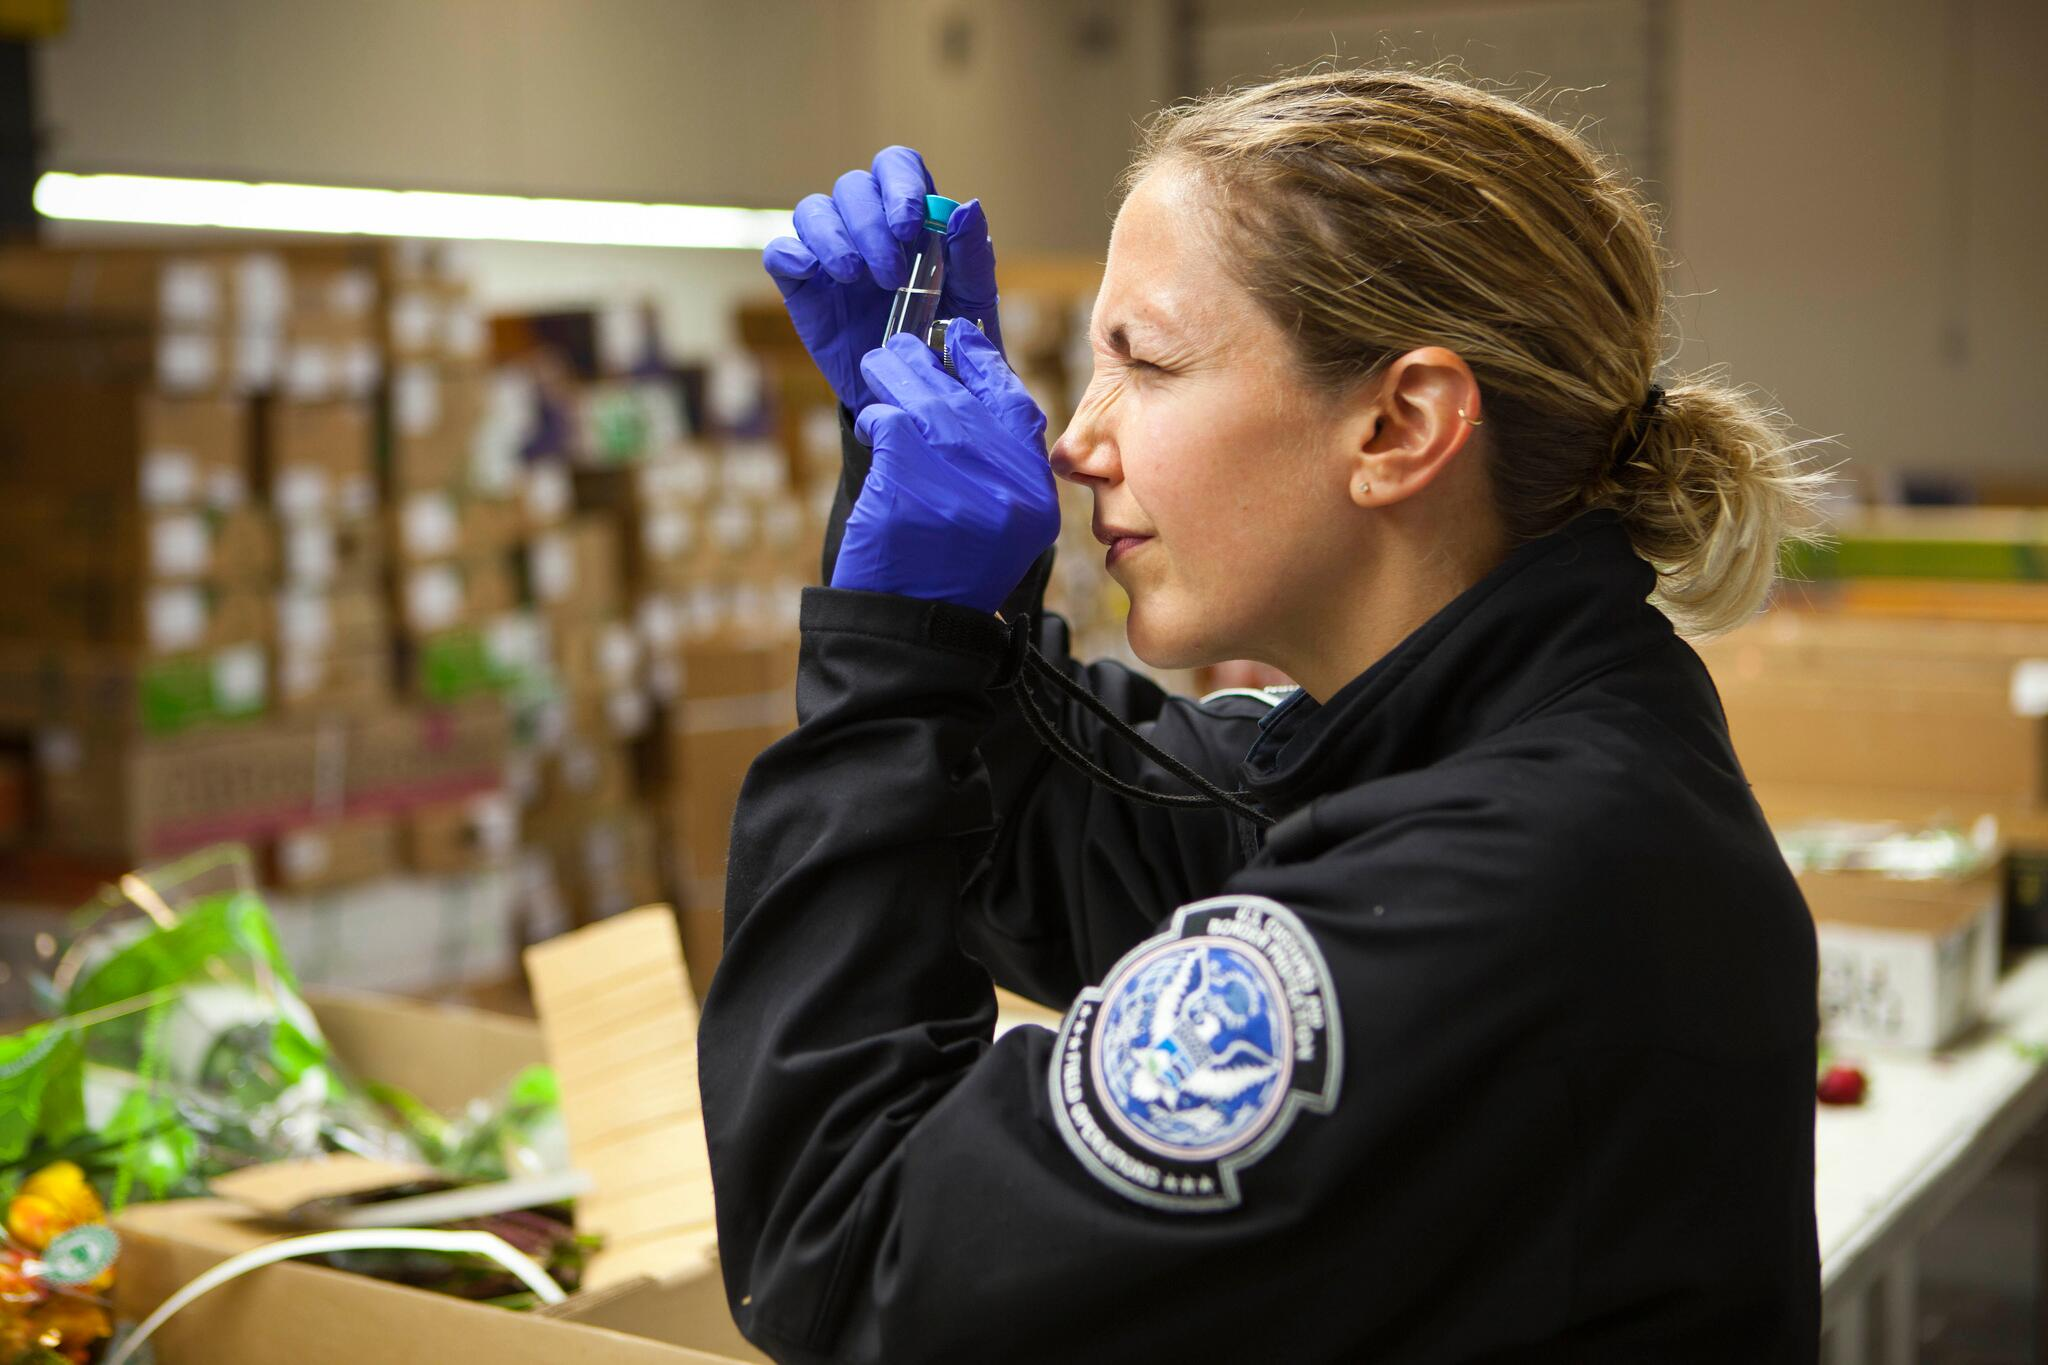 An agriculture specialists looks for results of a test given to imported flowers.